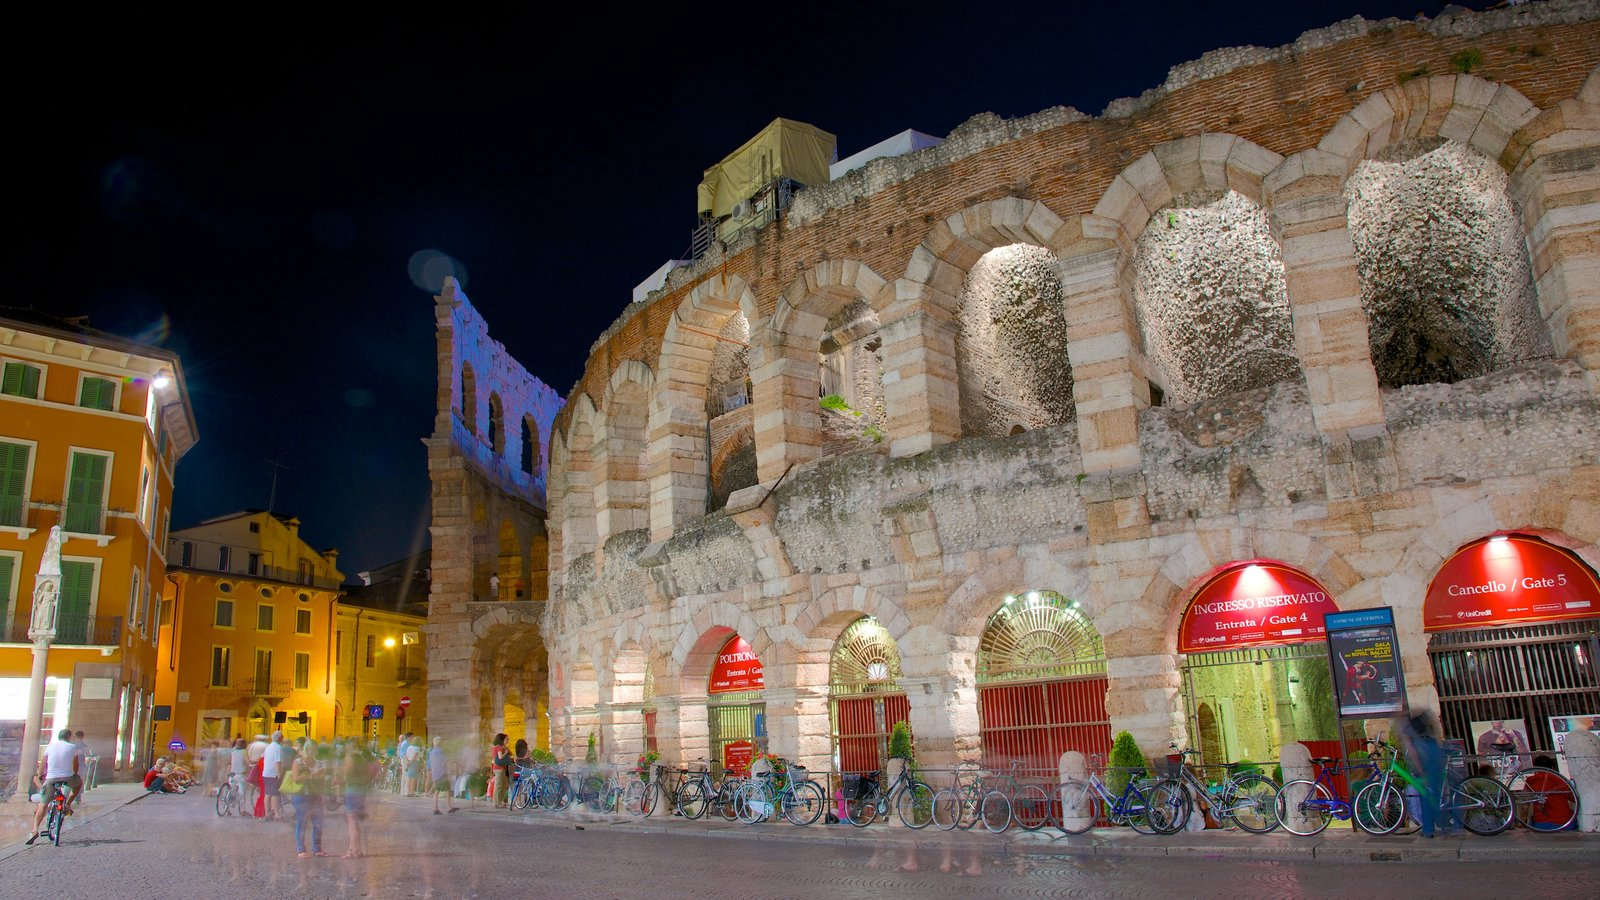 Arena di Verona featuring night scenes, a city and heritage elements